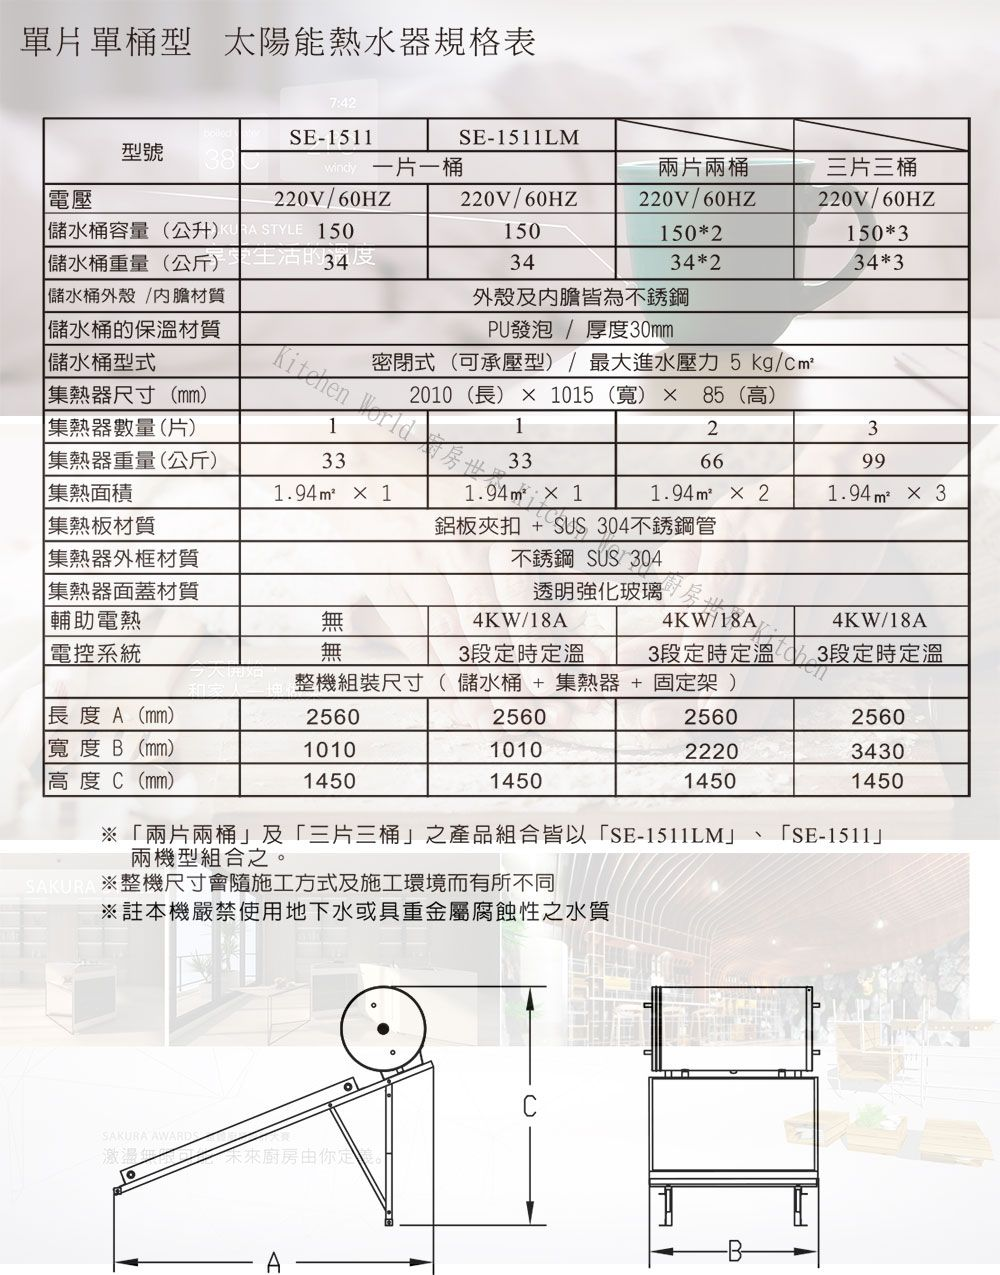 PK/goods/SAKURA/Water Heater/SE-1511LM-DM.jpg